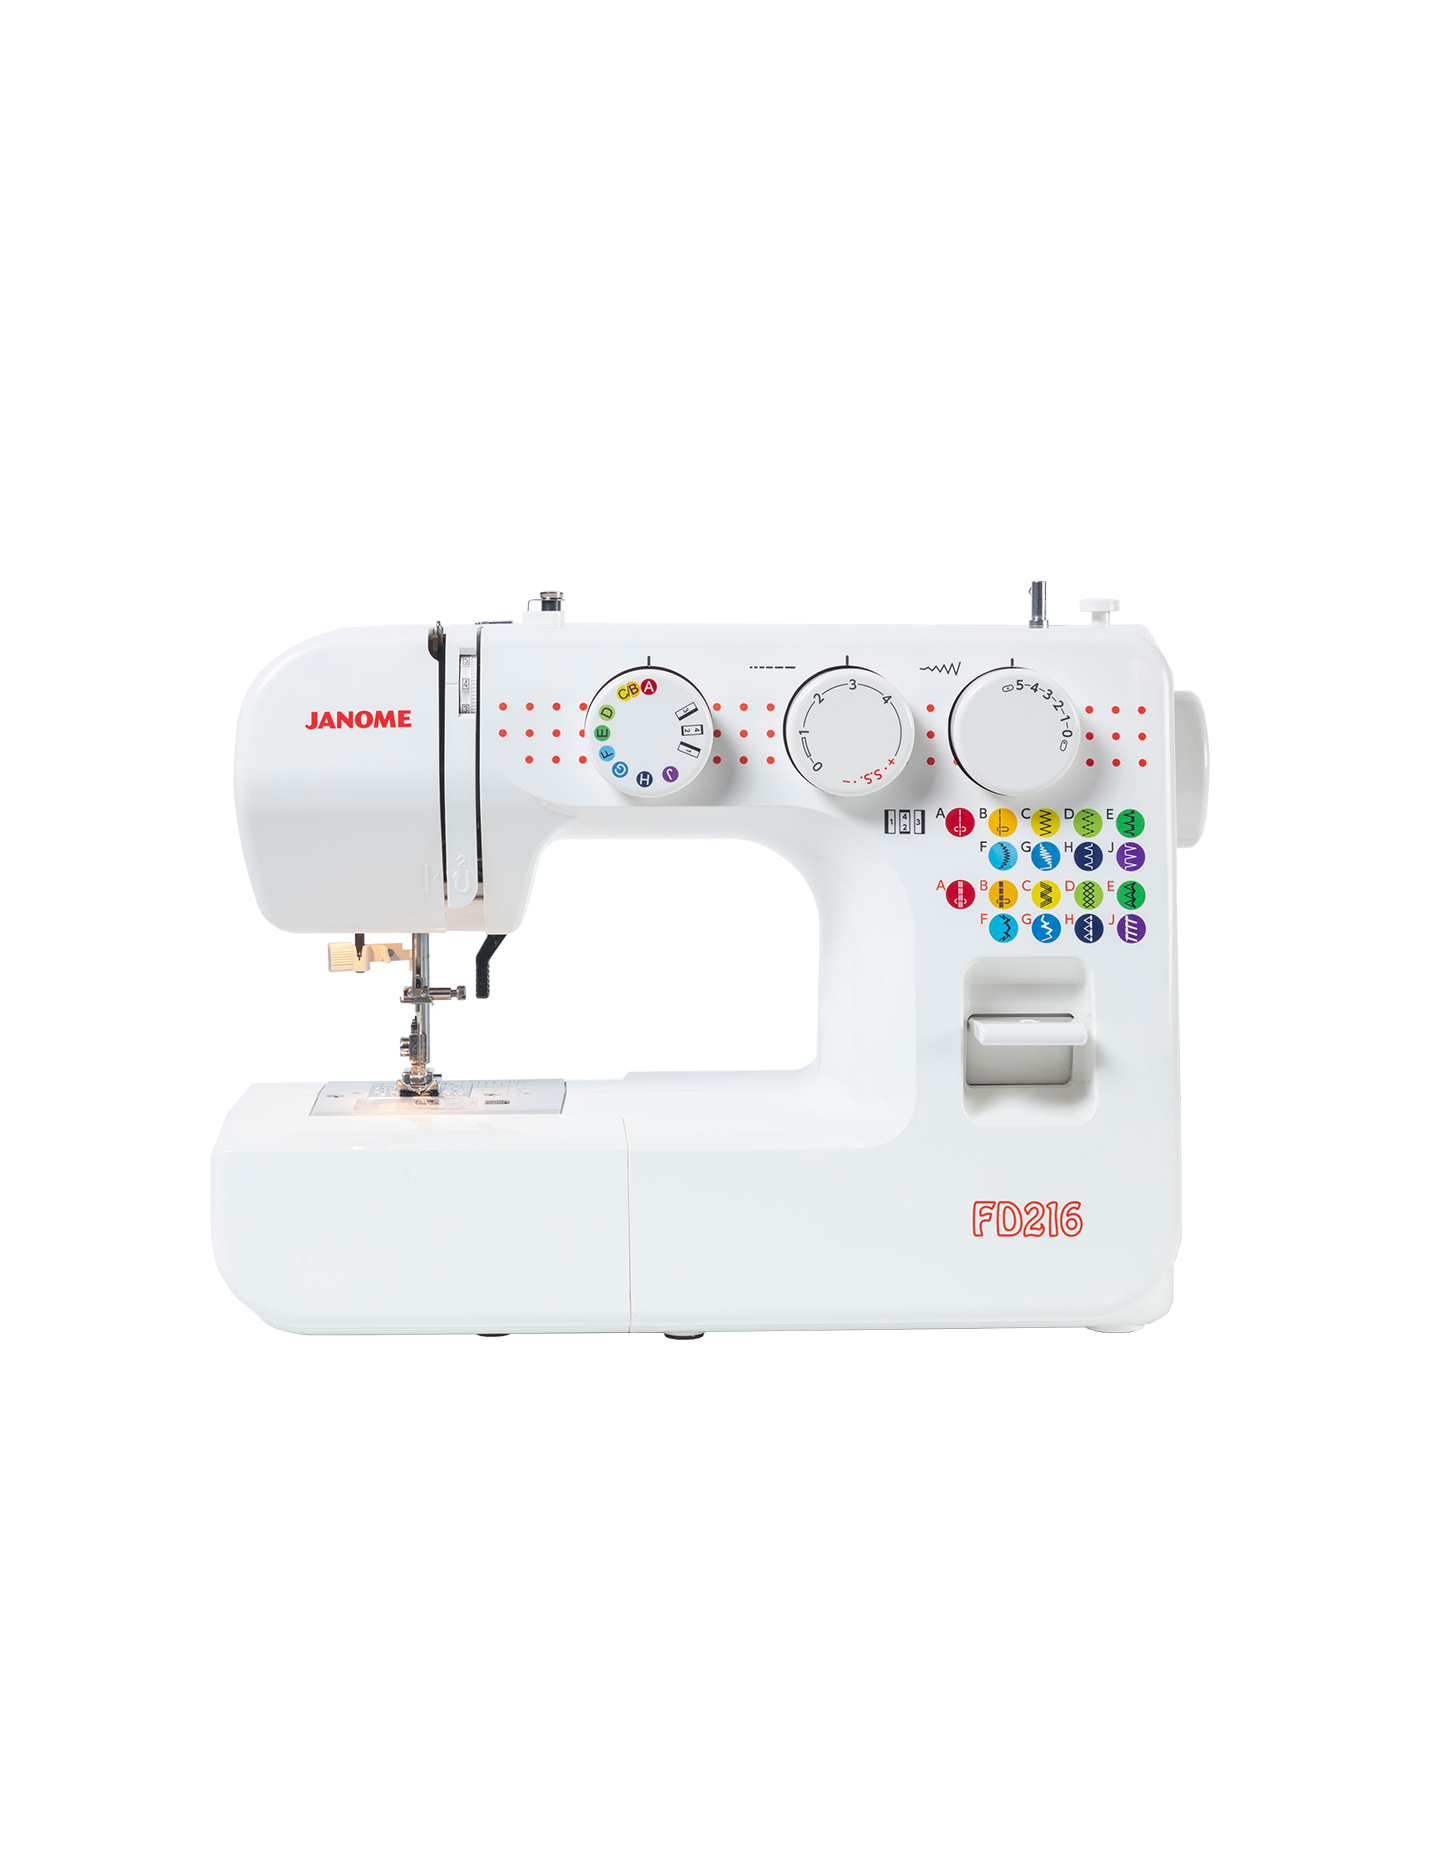 Janome FD216 Mechanical Sewing Machine Beginner Basic Australia Postage Discount Deal Spotlight HobbySew Cheap